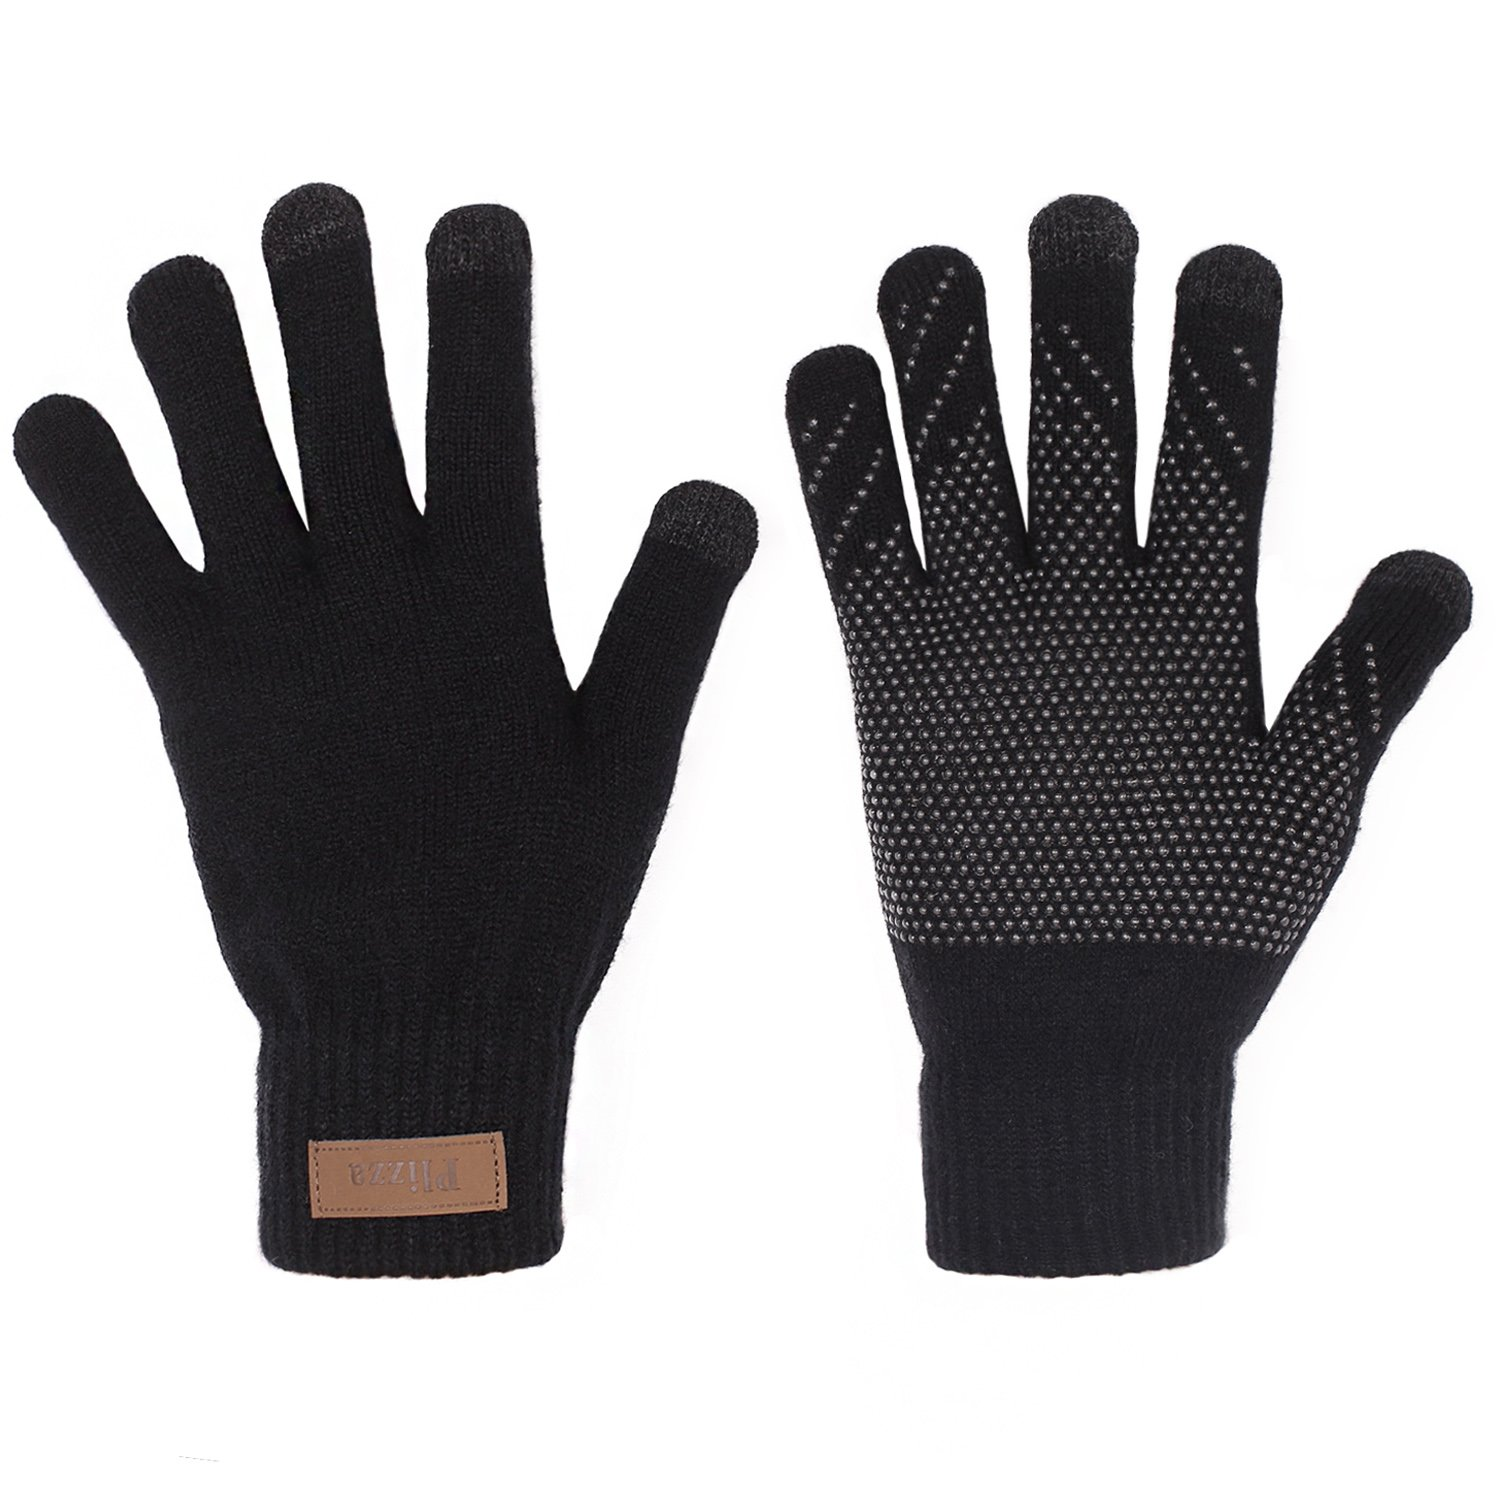 Best Rated in Men's Novelty Gloves & Mittens & Helpful